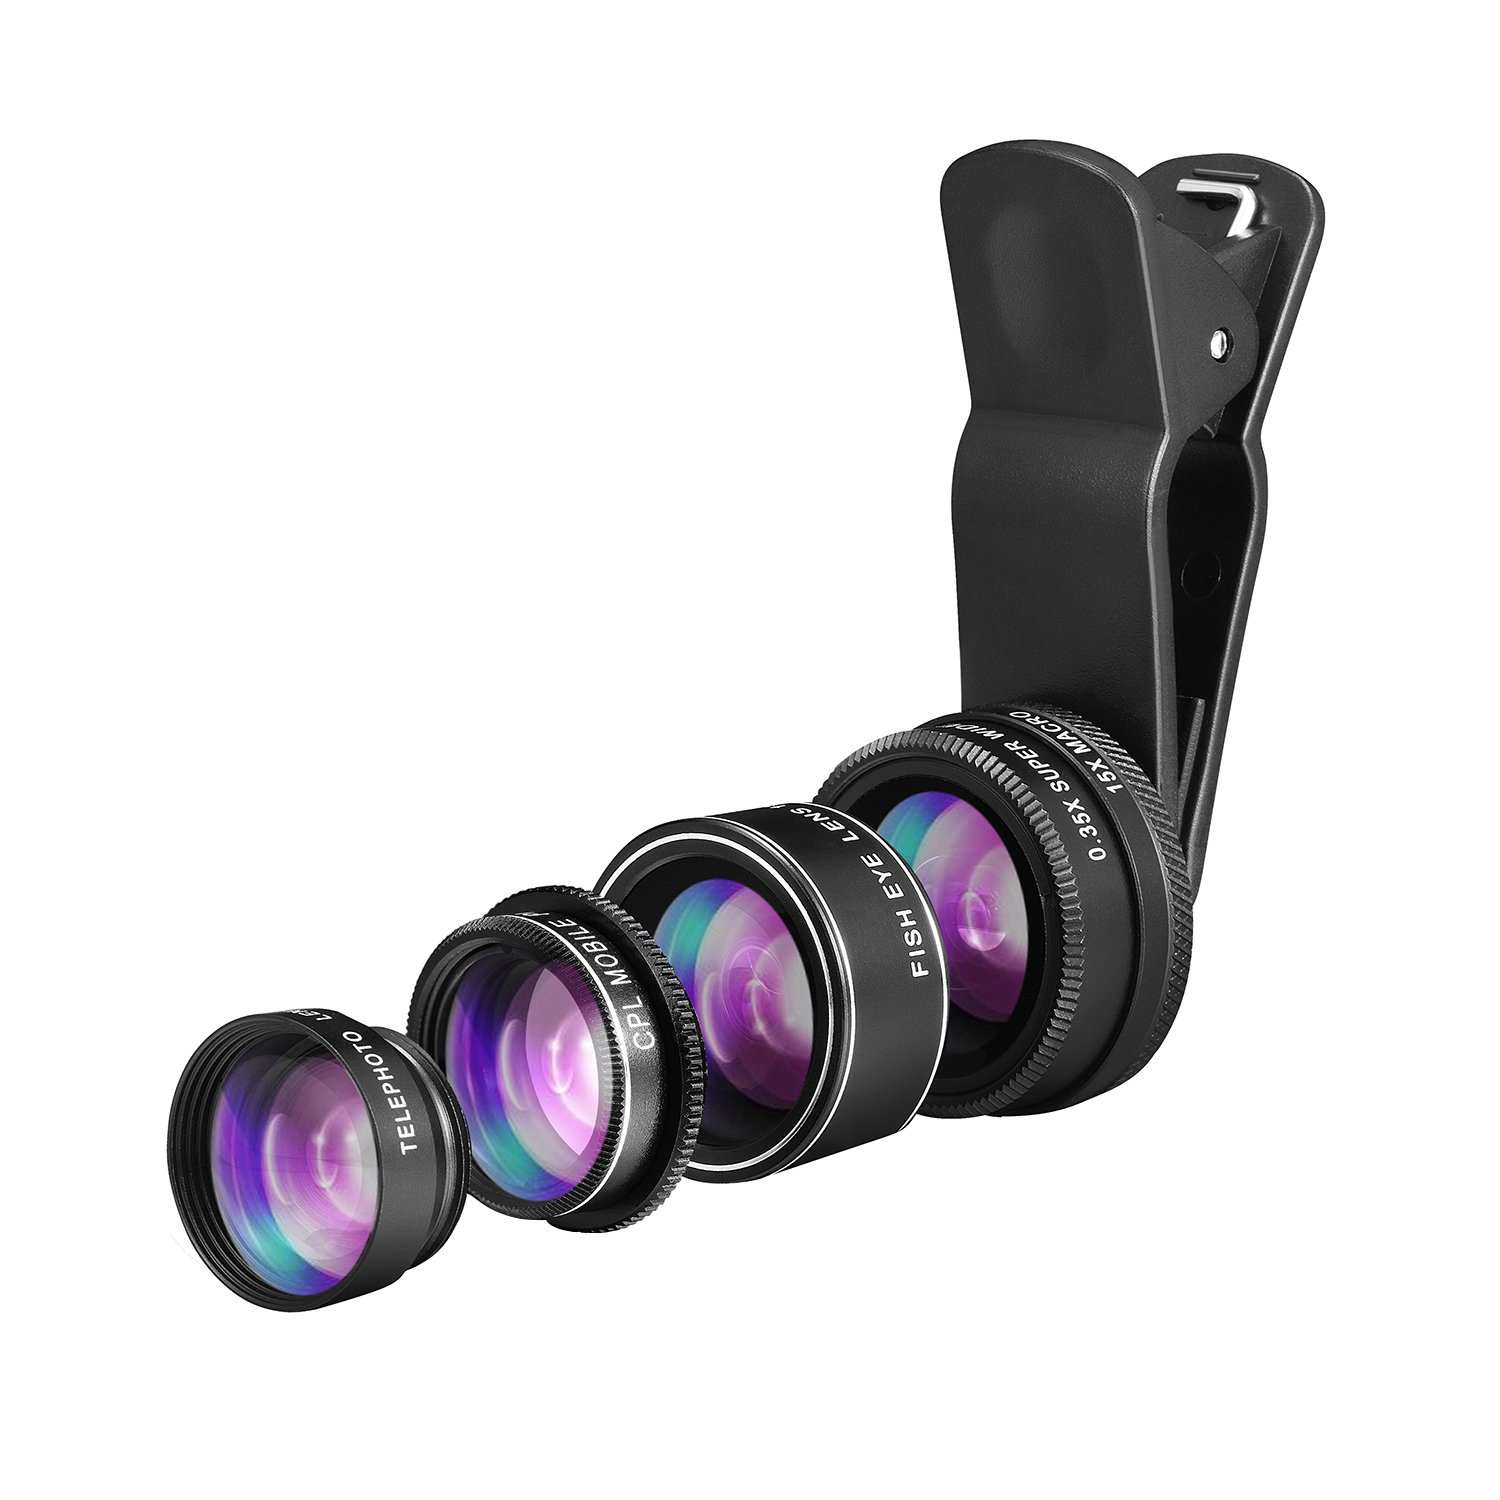 TECHO 5 in 1 HD Camera Lens Kit [Fisheye Lens, Macro Lens, 0.35X Wide Angle Lens, 2X Zoom Telephoto Lens, CPL] Cell Phone Lens for iPhone X, 8, 8 Plus, 7,6, SE & Most Smartphones by TECHO